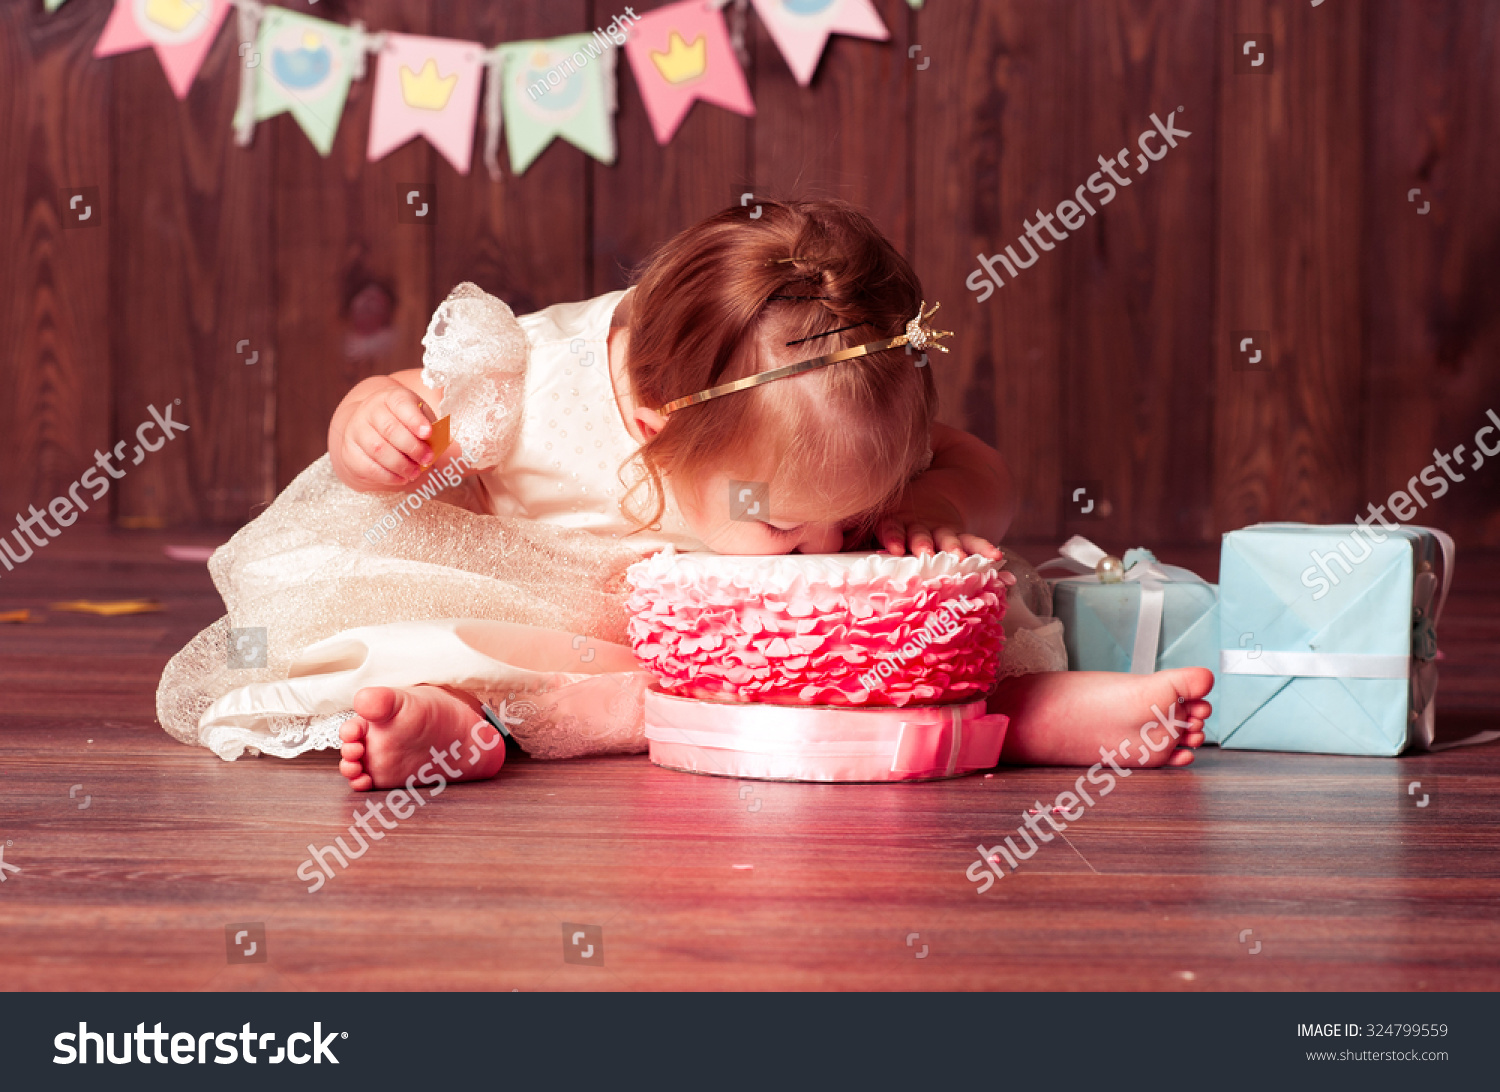 ... first birthday in room. Eating cake. Birthday decoration. Childhood